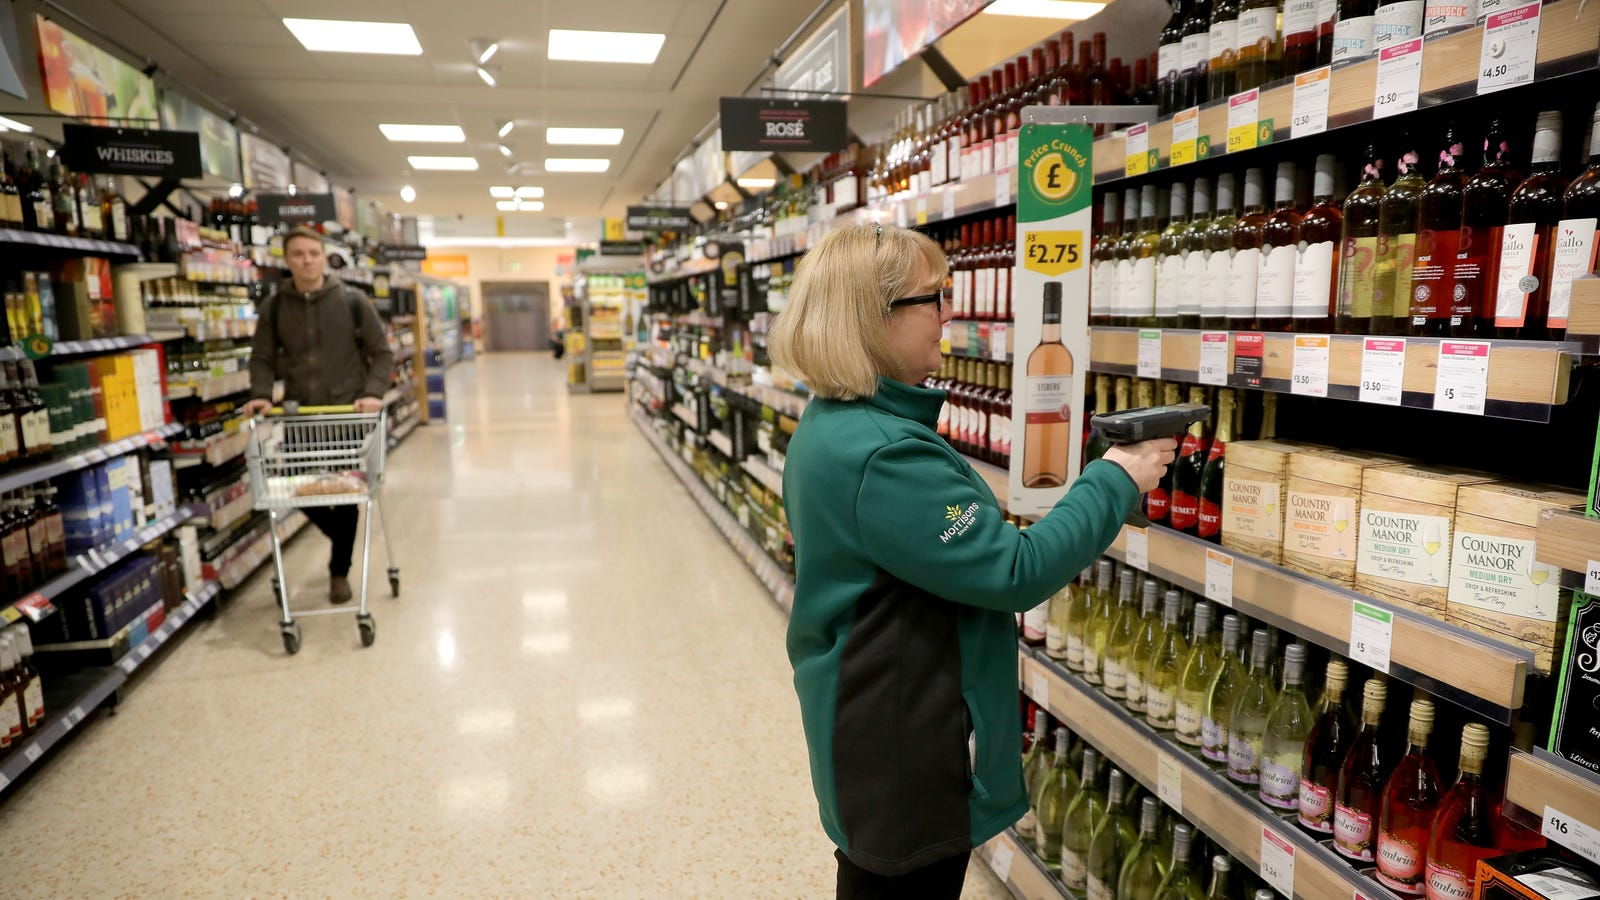 UK Supermarkets Will Test Using Facial Recognition to Verify Alcohol Buyers' Age, Report Claims